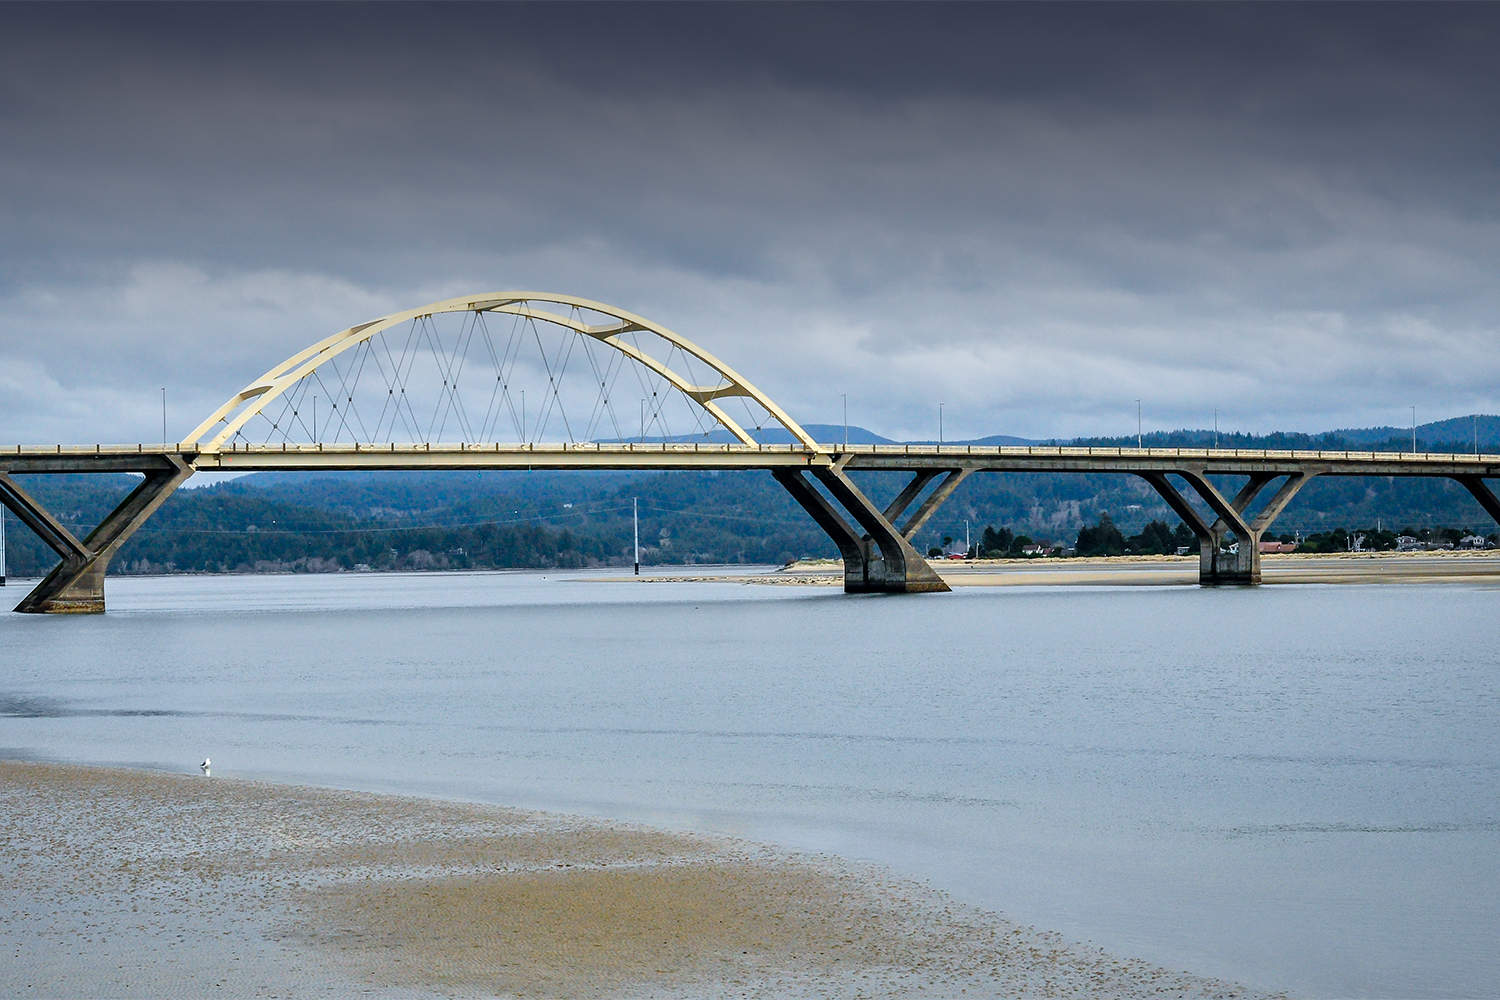 alsea-bridge-image-01-1000x1500.jpg